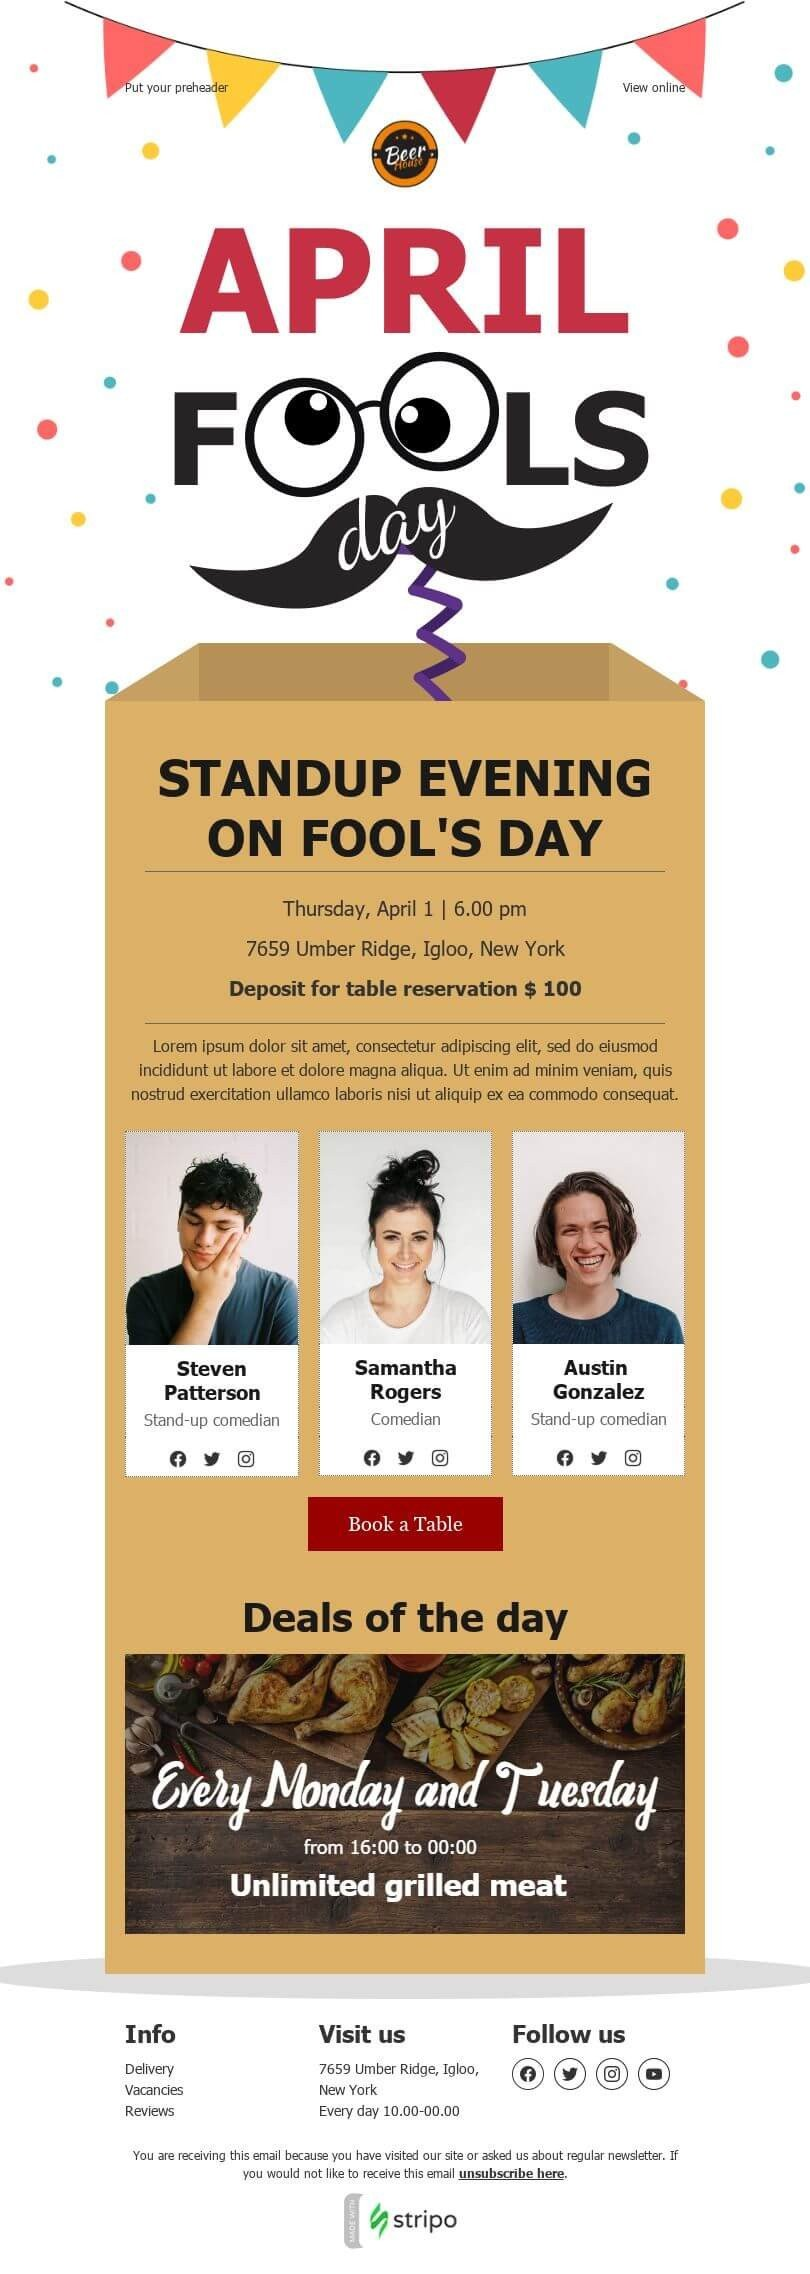 April Fools' Day Email Template «Standup evening» for Food industry desktop view